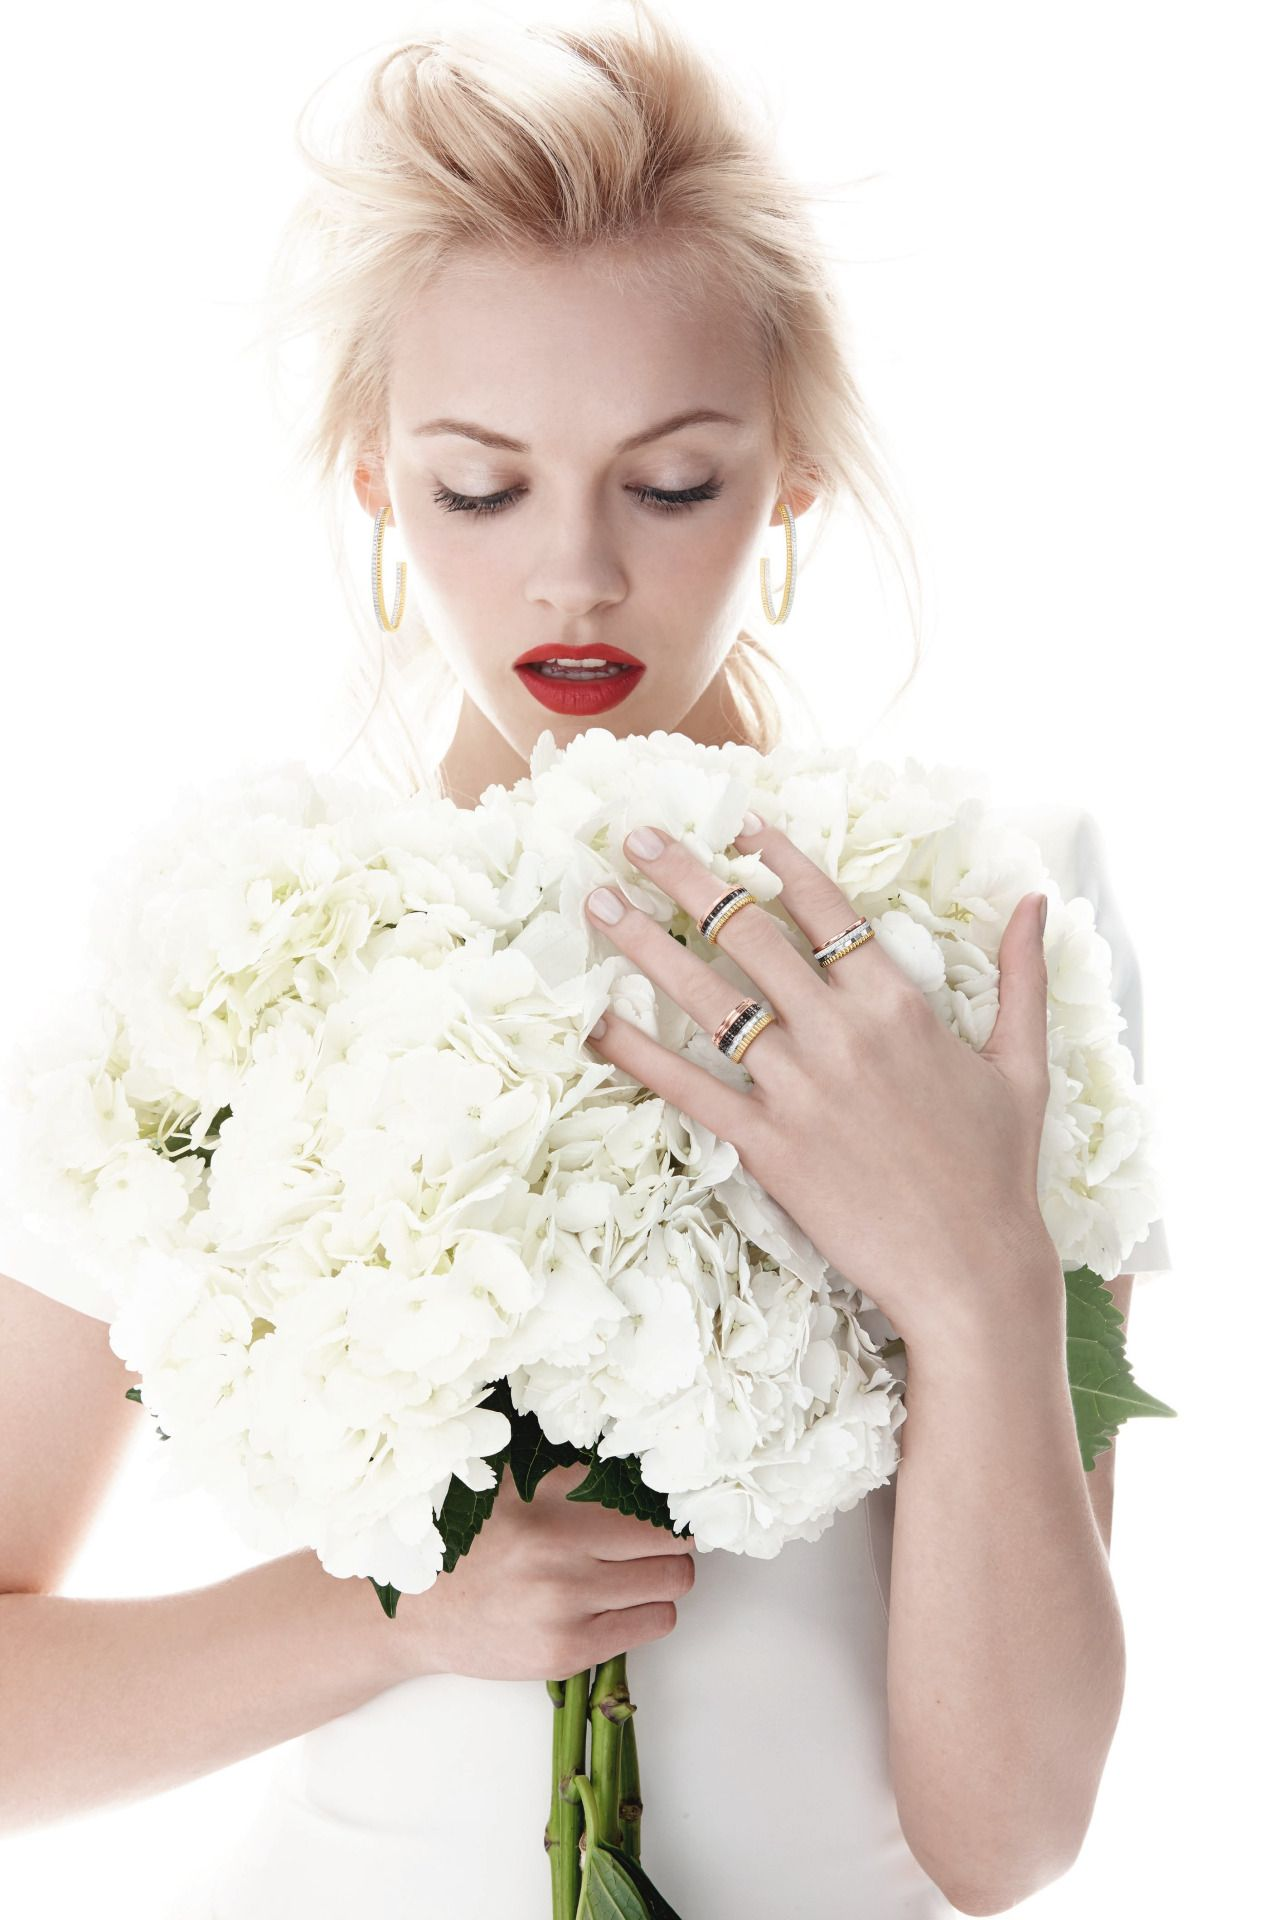 Neiman marcus dresses for weddings  Pin by Ann ххх on fashion  Pinterest  Wedding Ginta lapina and